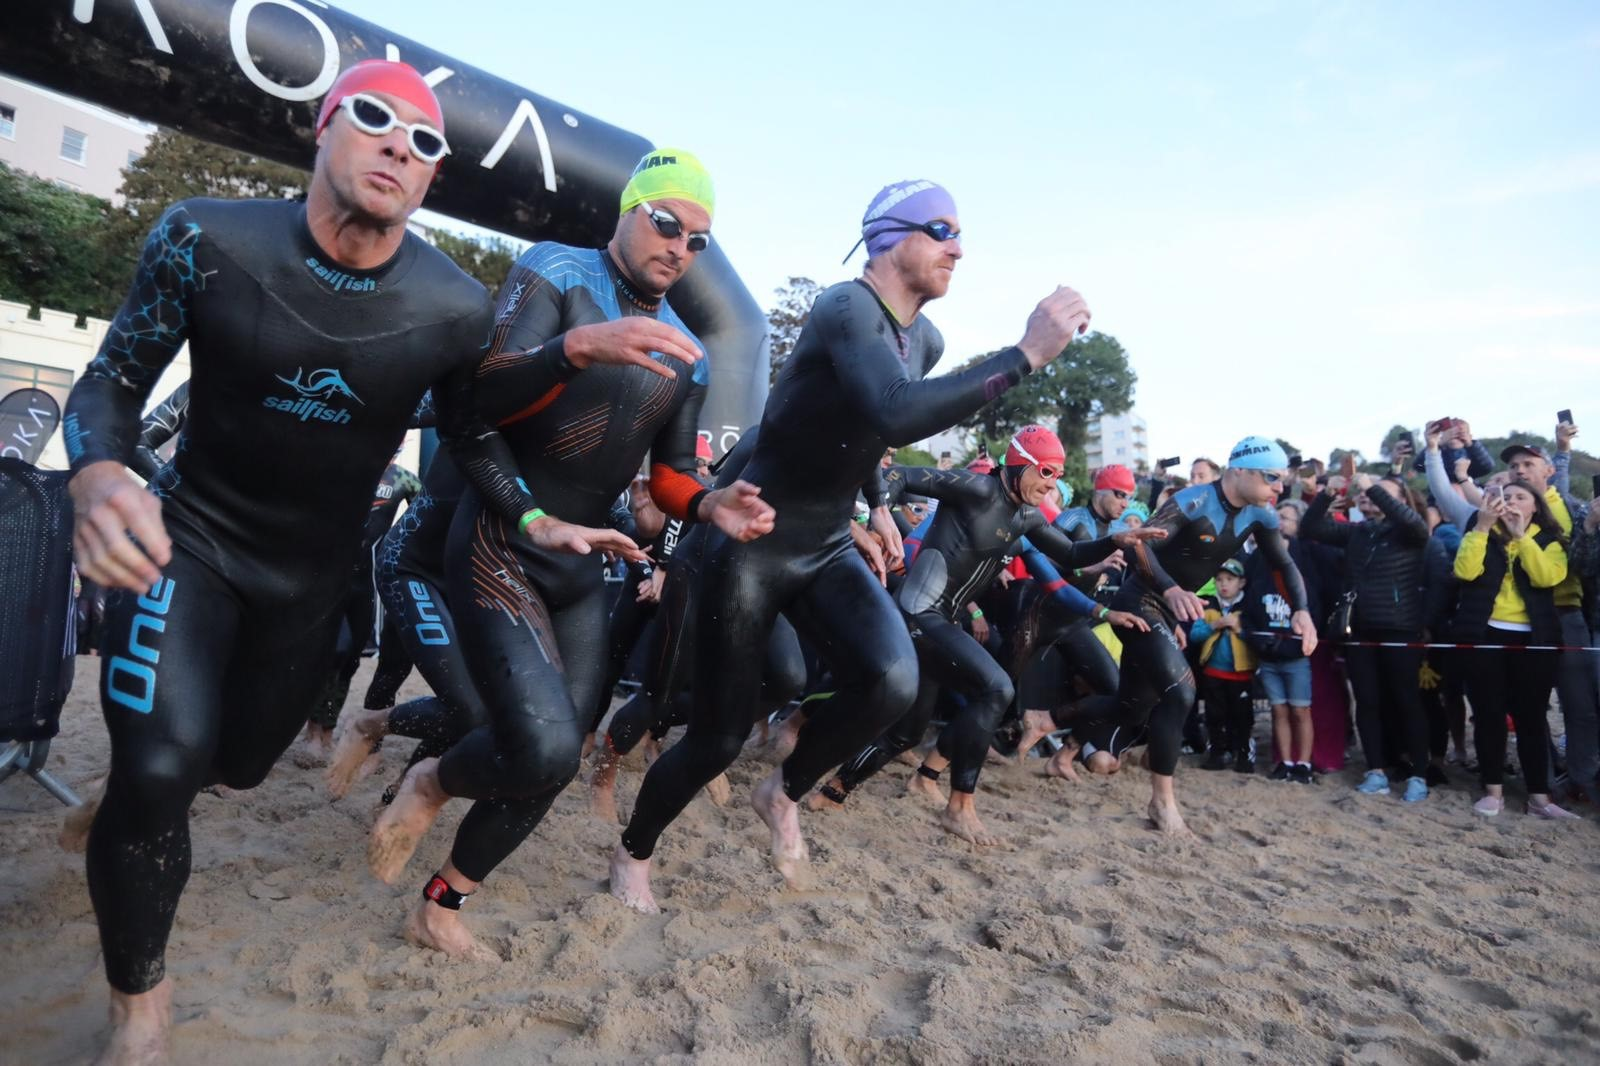 Thousands in Tenby as Ironman Wales athletes dive in to swim